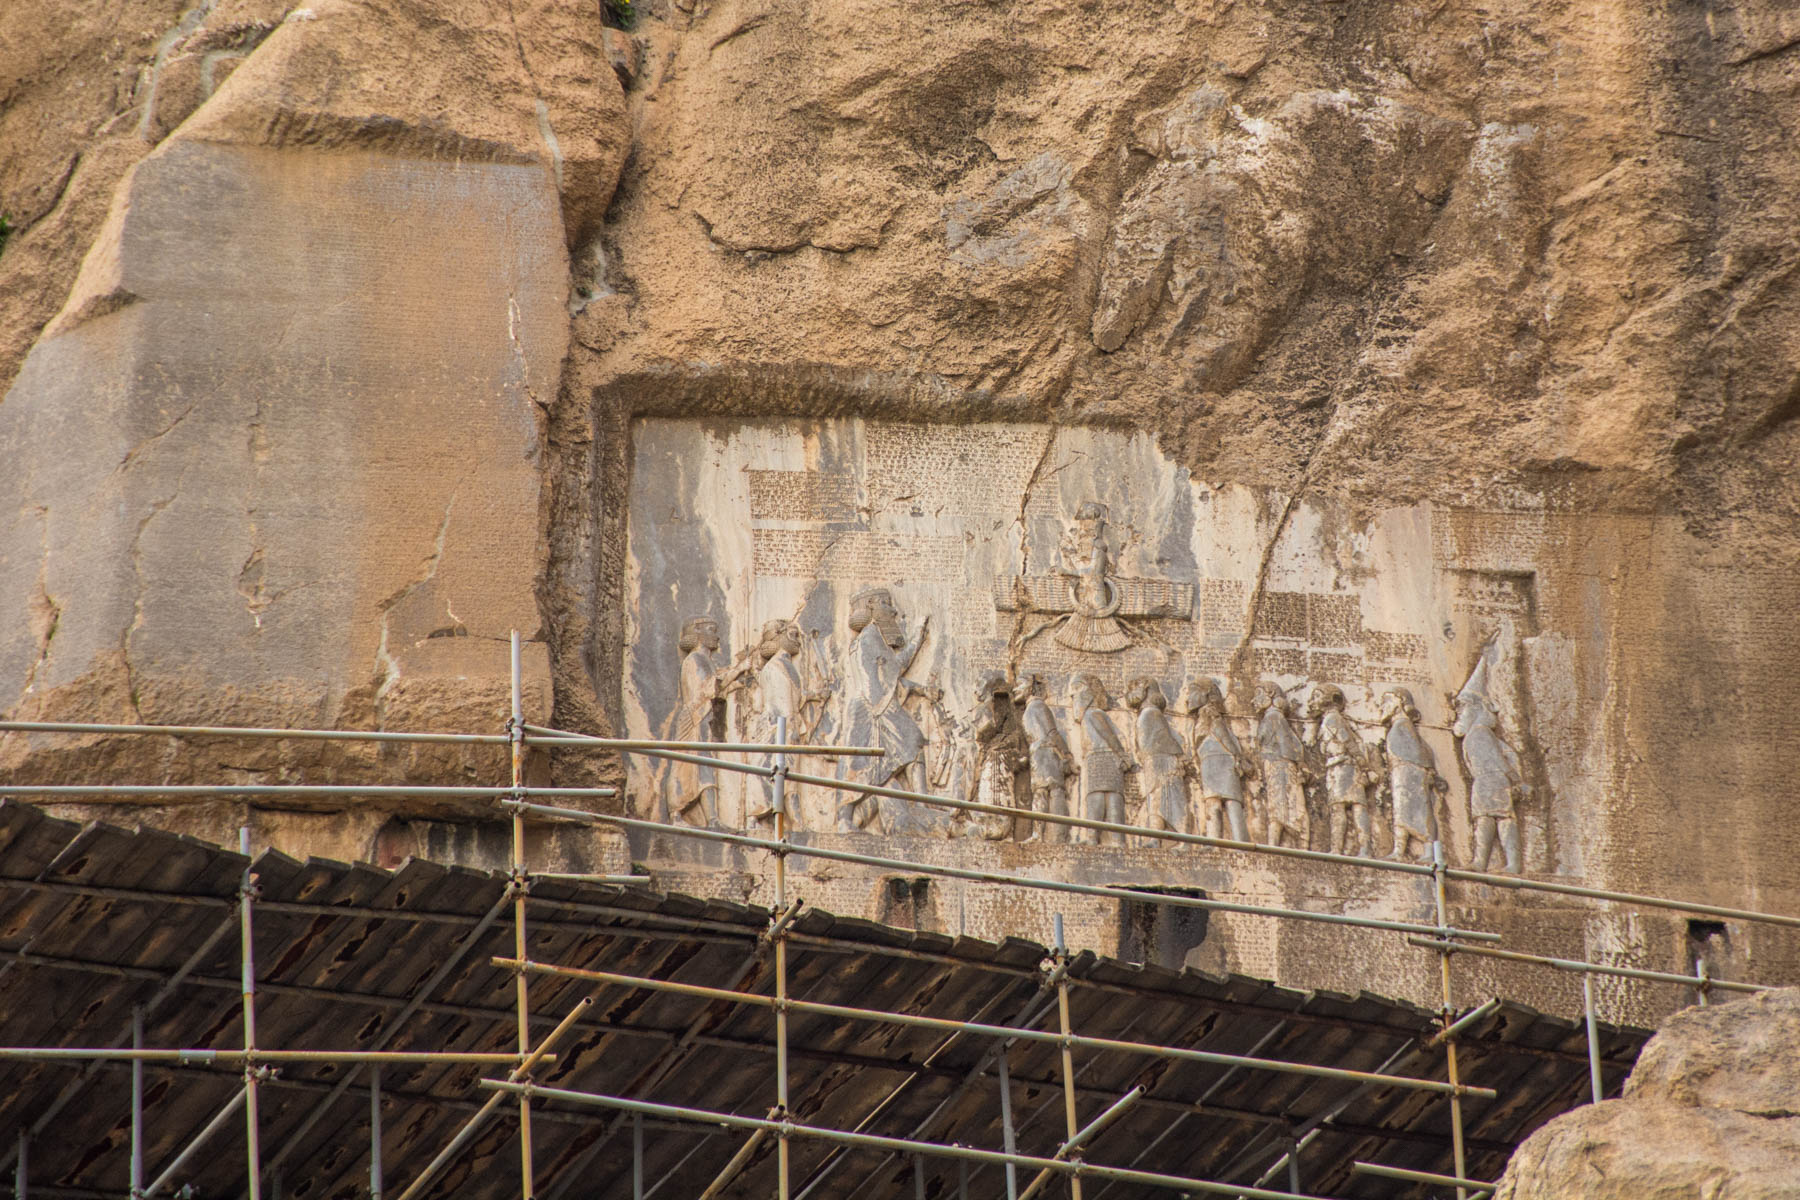 The bas reliefs at Bisotun in Iran - Lost With Purpose